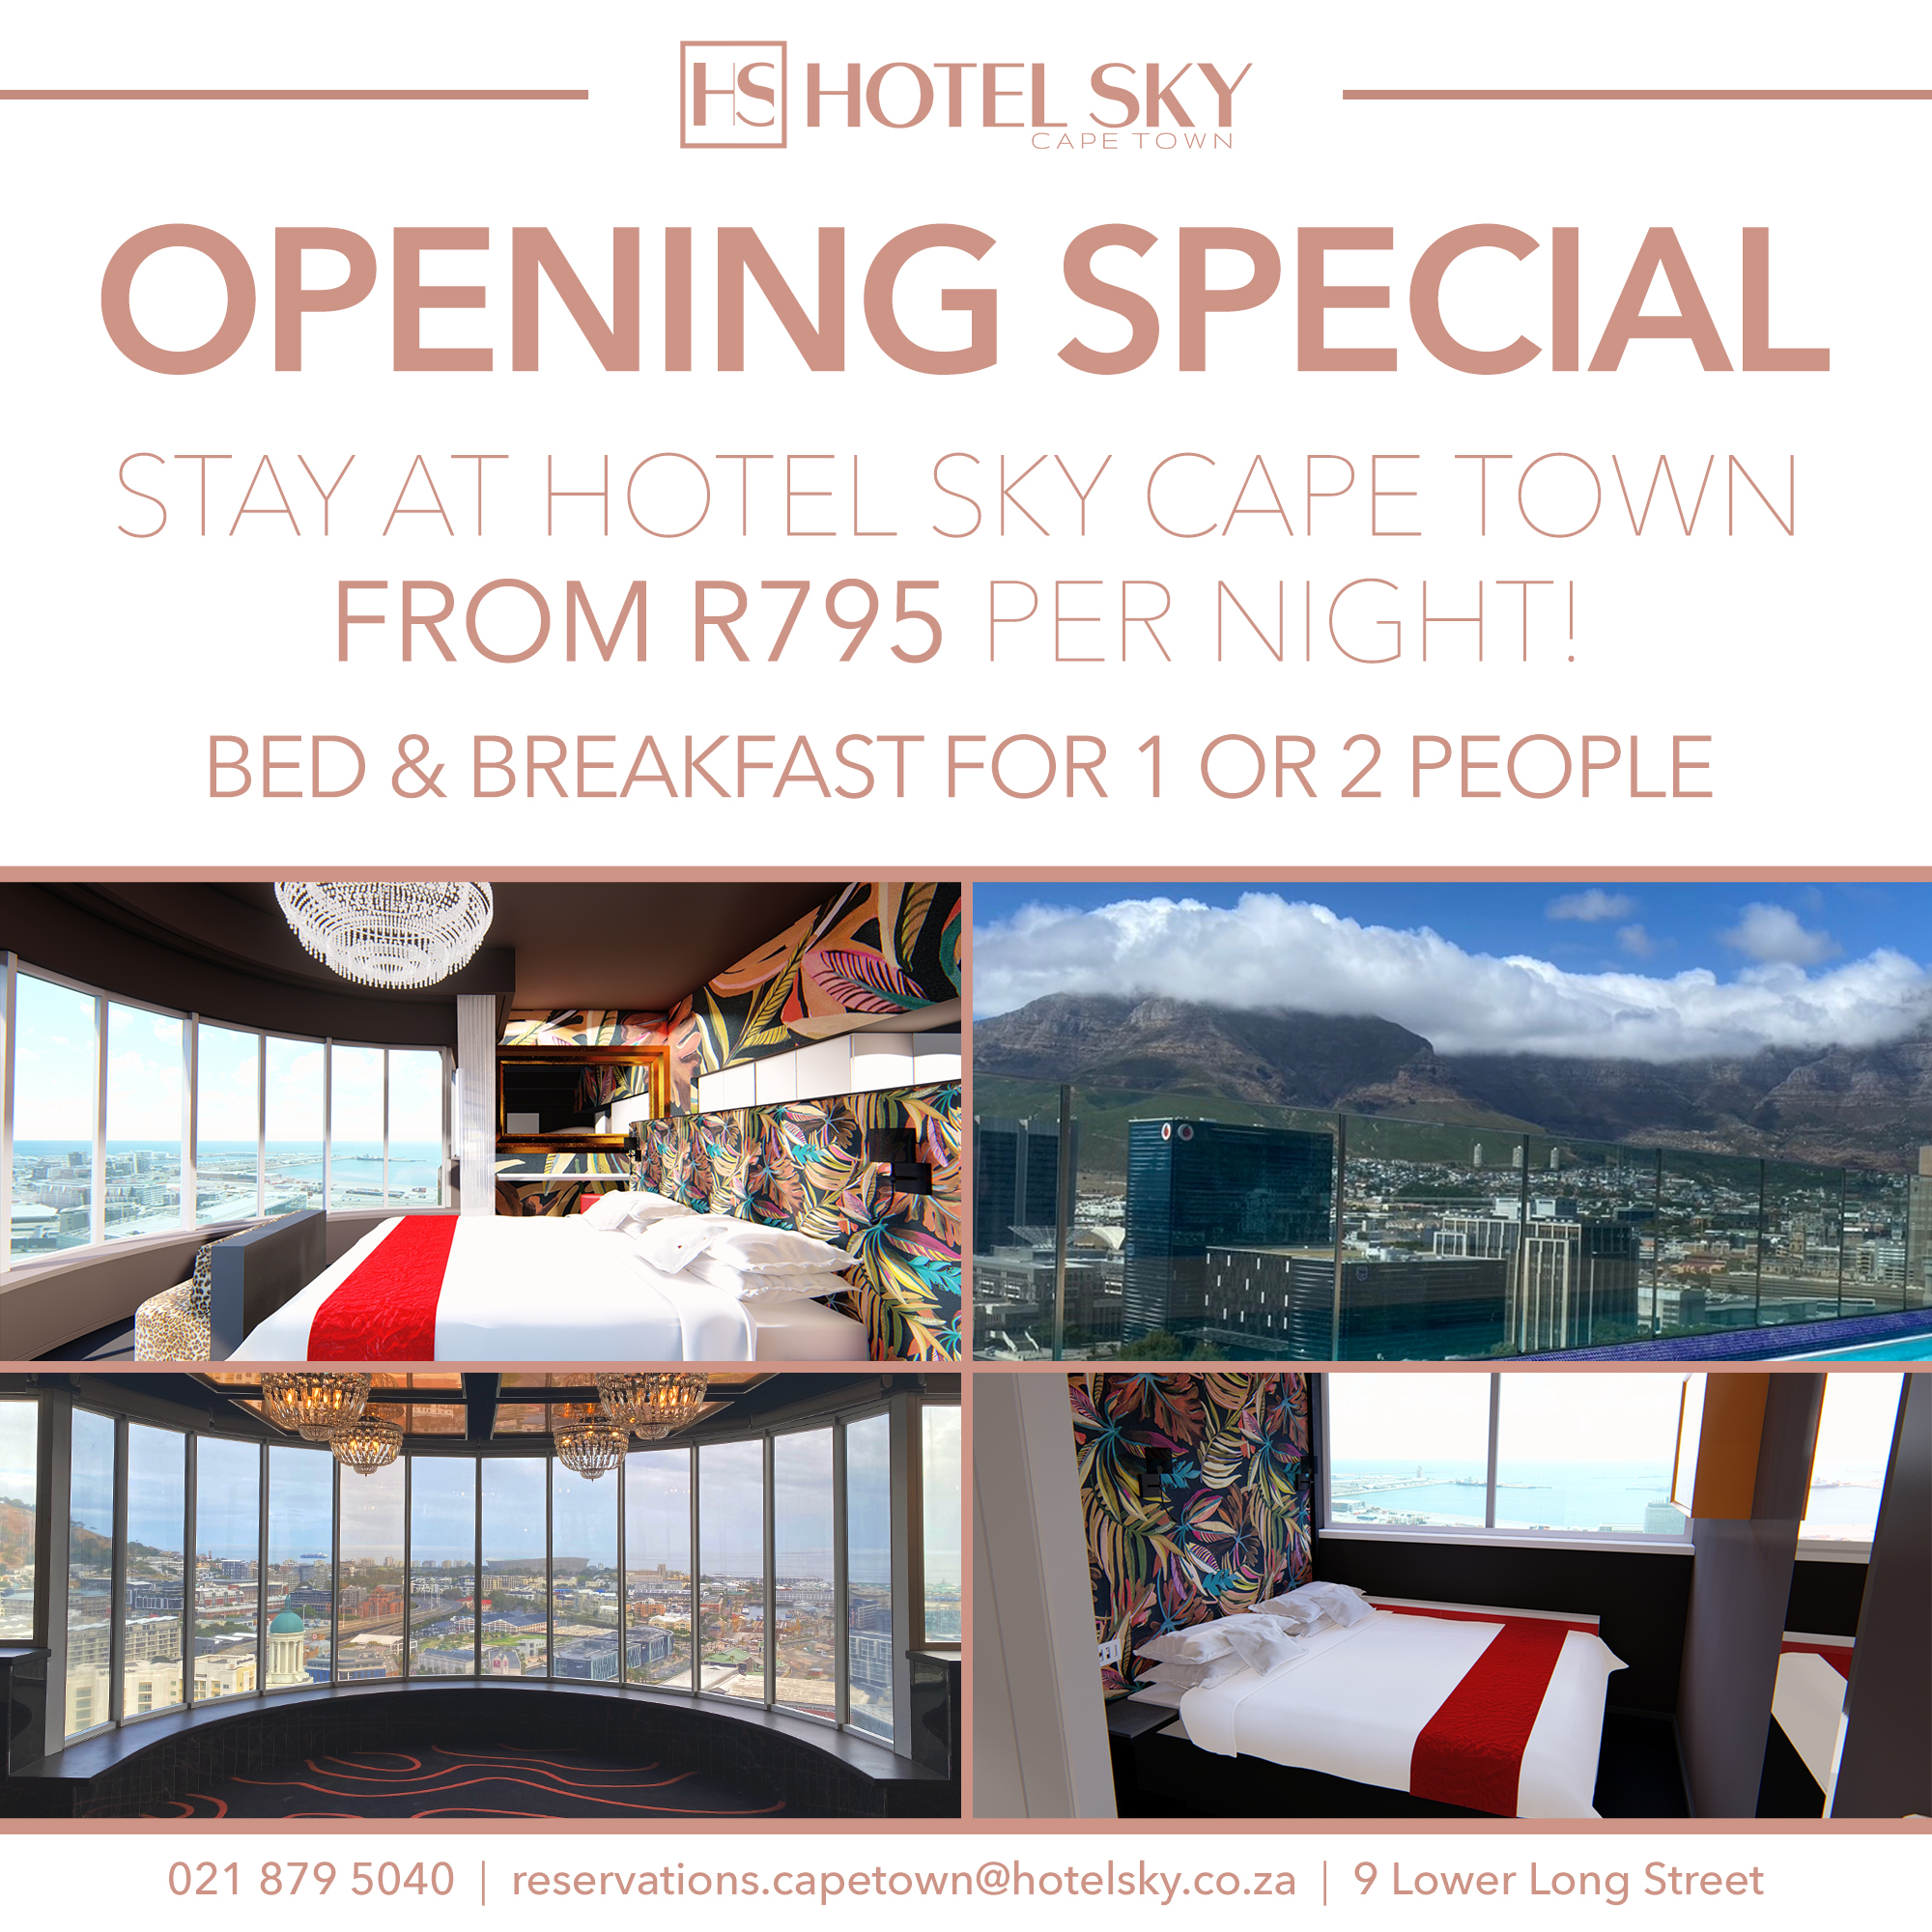 Opening special for Hotel Sky Cape Town